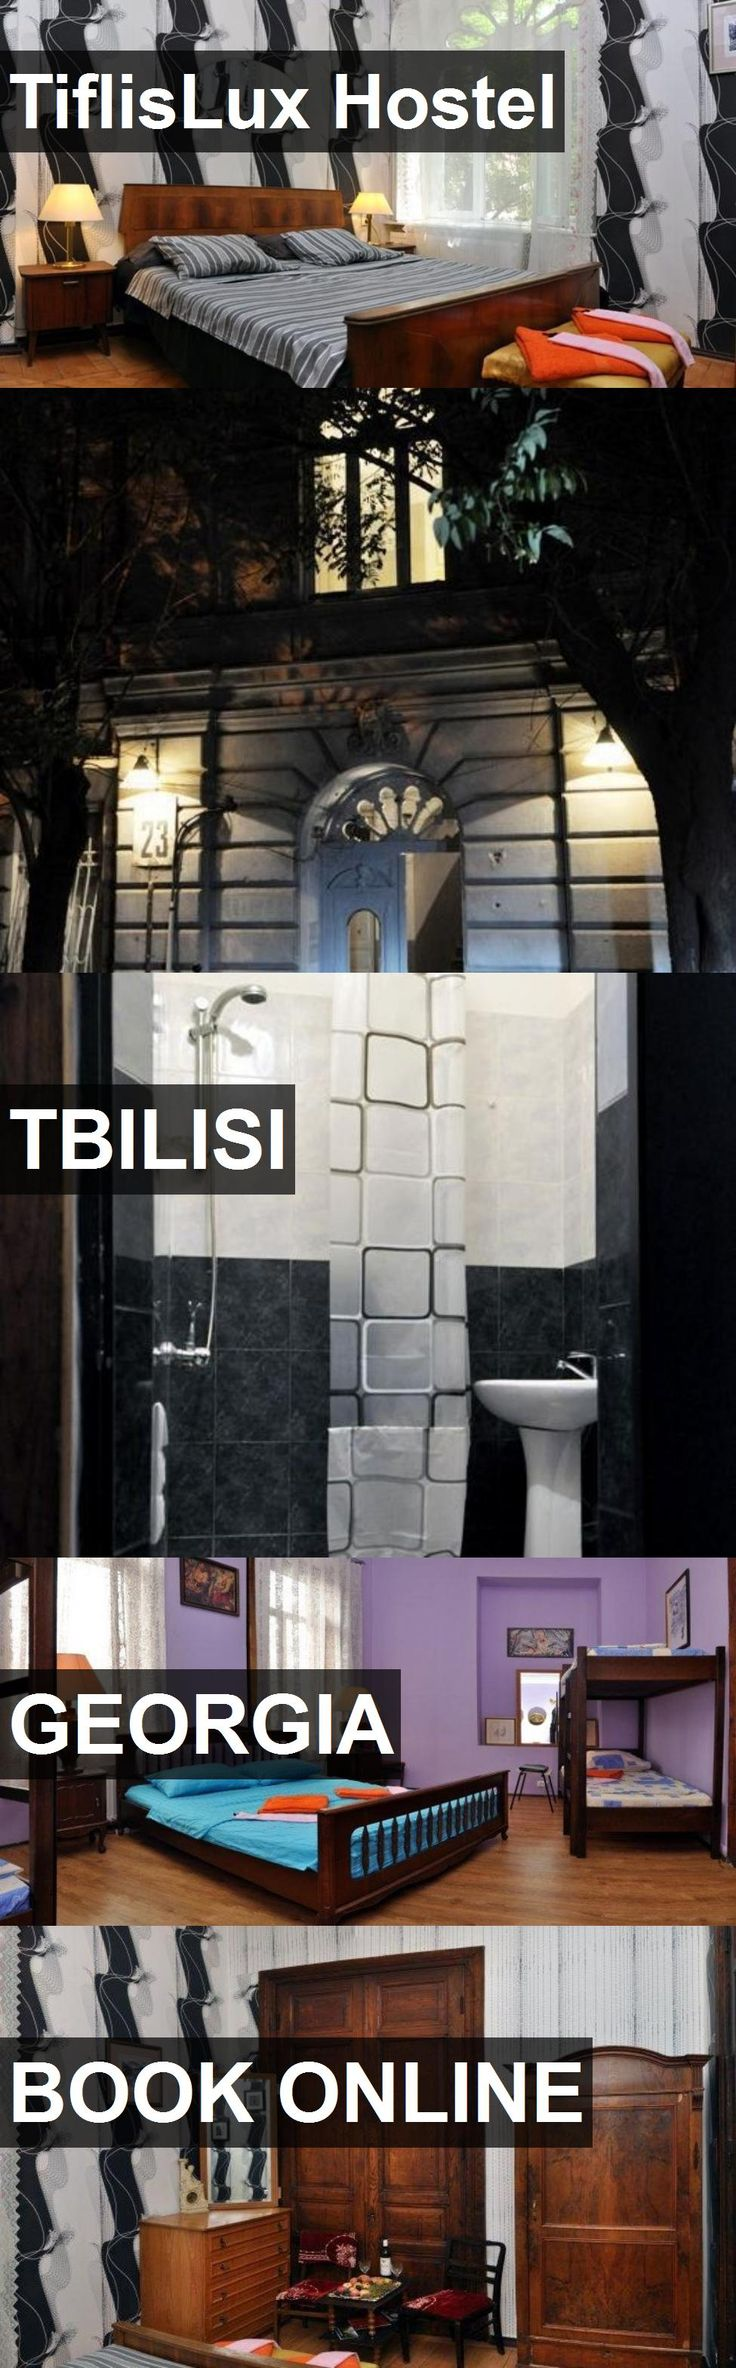 Hotel TiflisLux Hostel in Tbilisi, Georgia. For more information, photos, reviews and best prices please follow the link. #Georgia #Tbilisi #hotel #travel #vacation